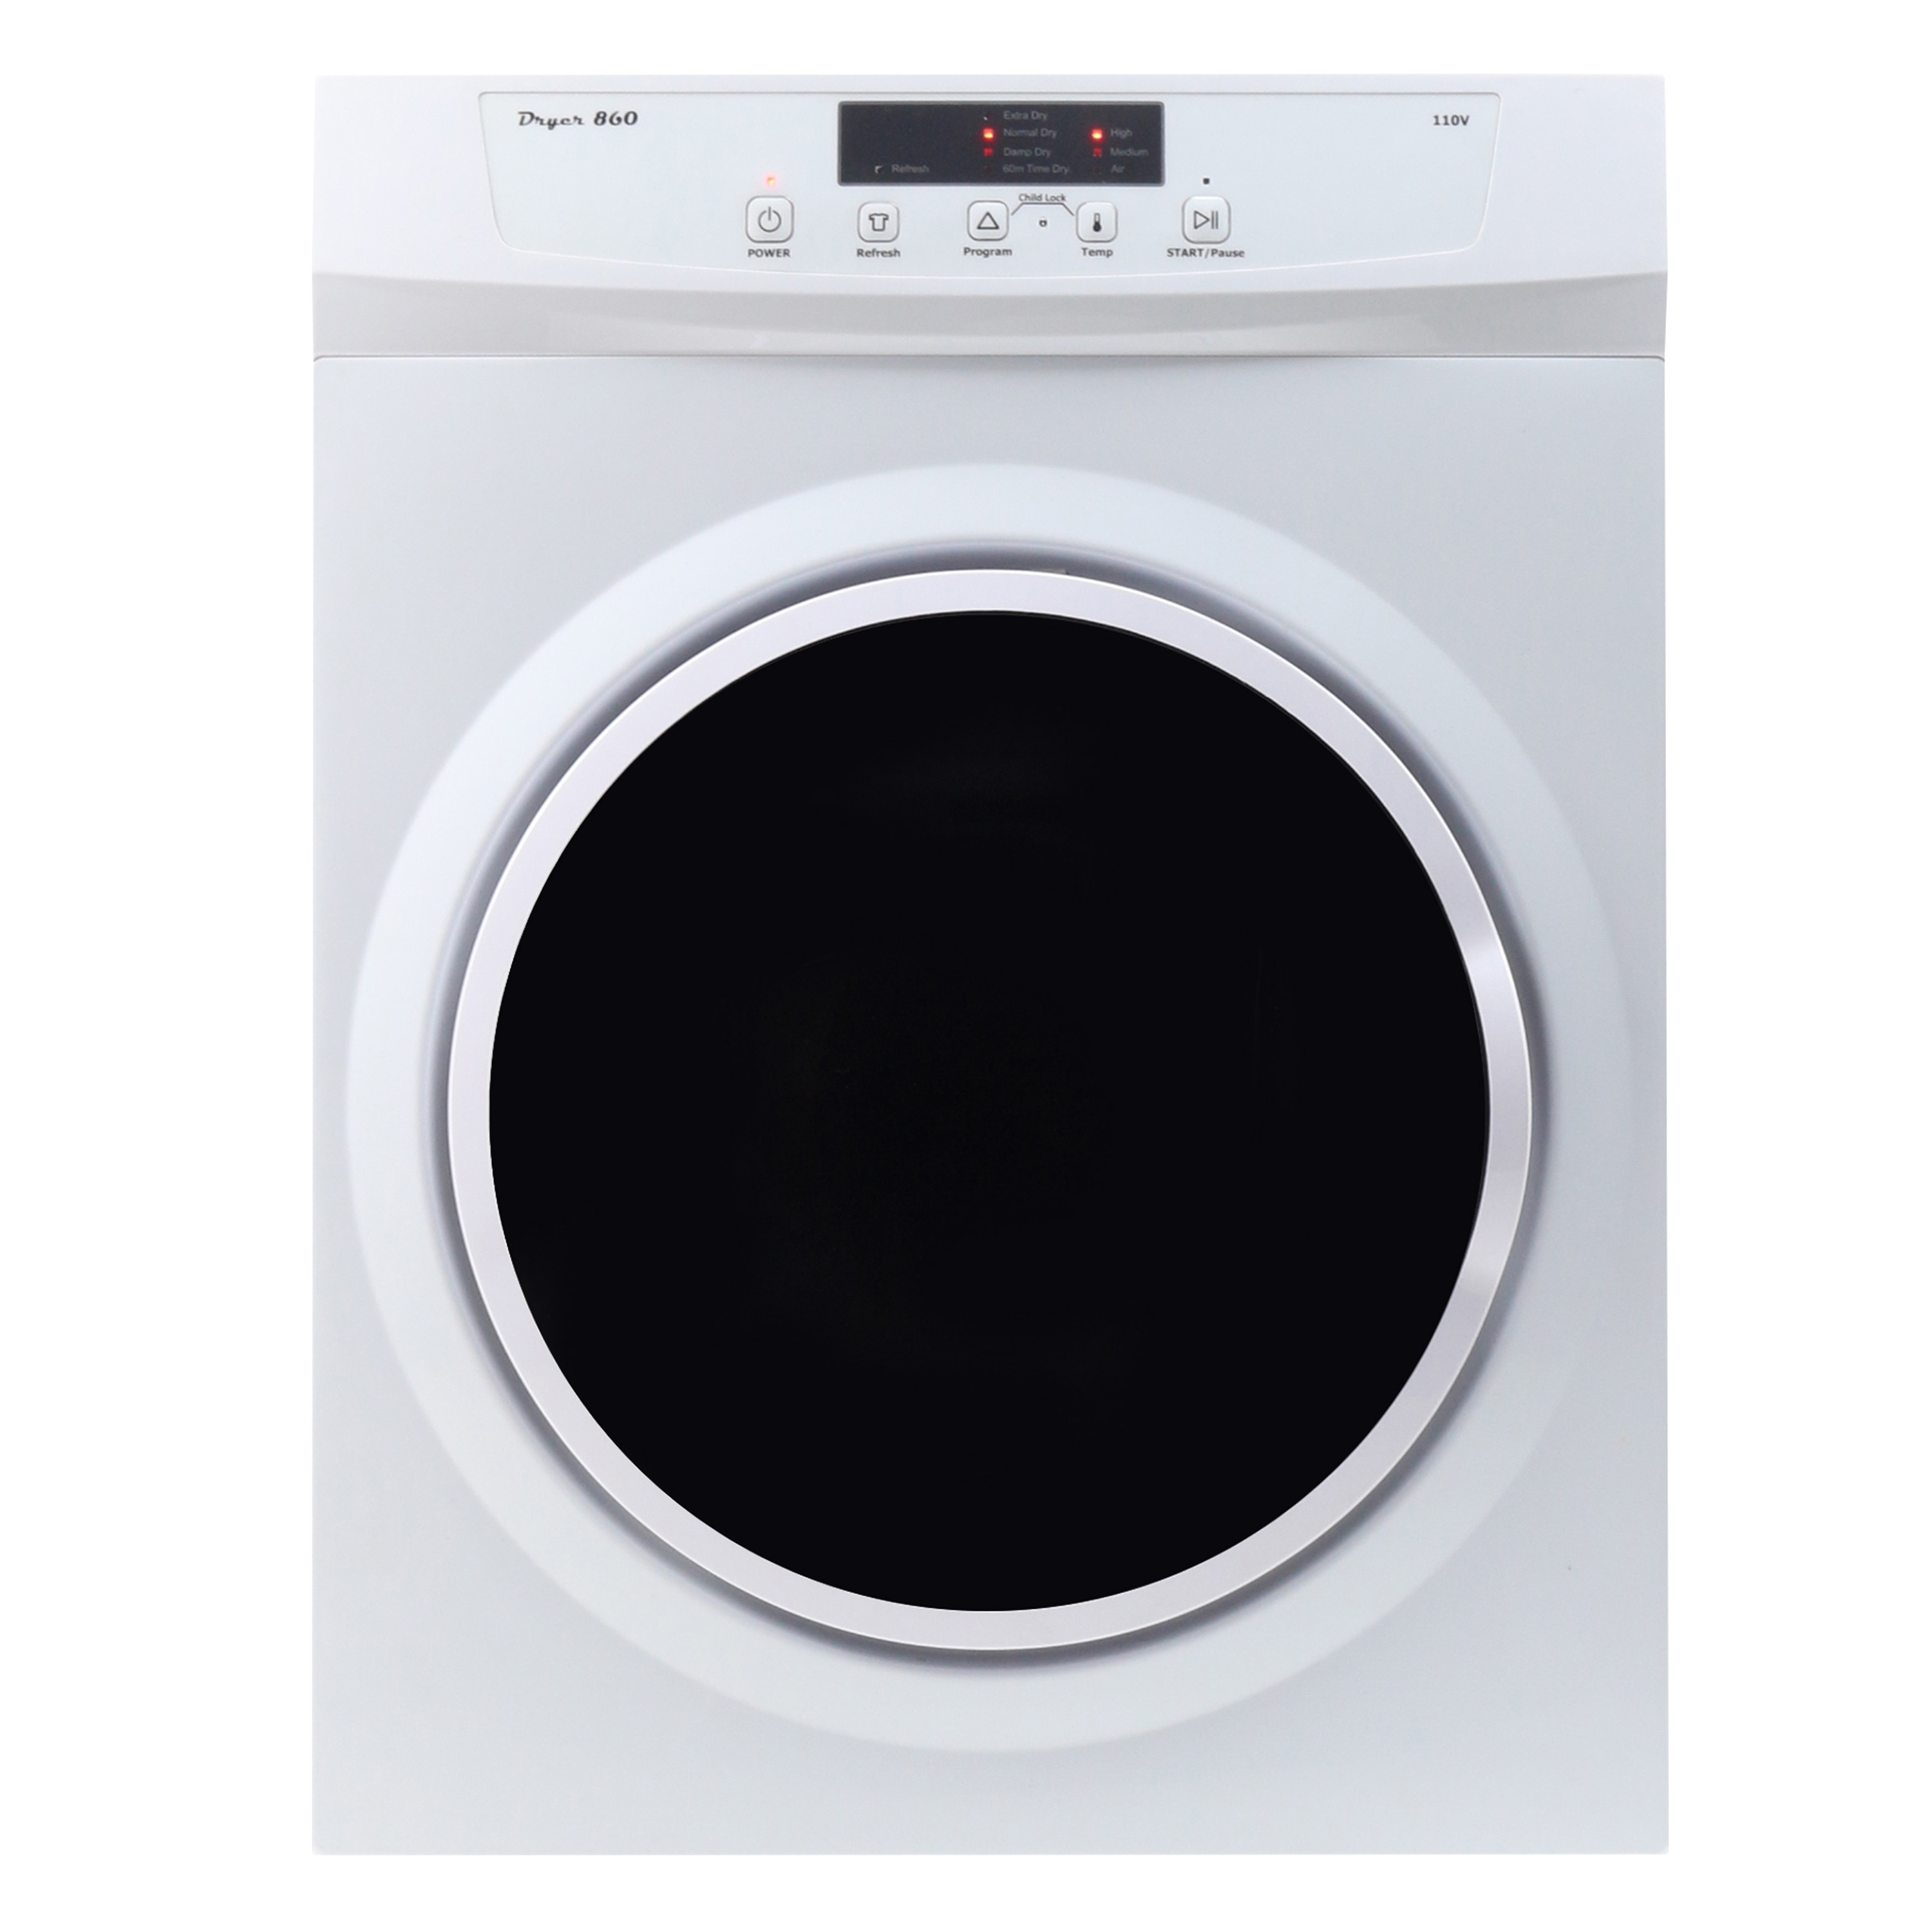 13 lb. 110 V Compact Standard Electric Venting Dryer with...